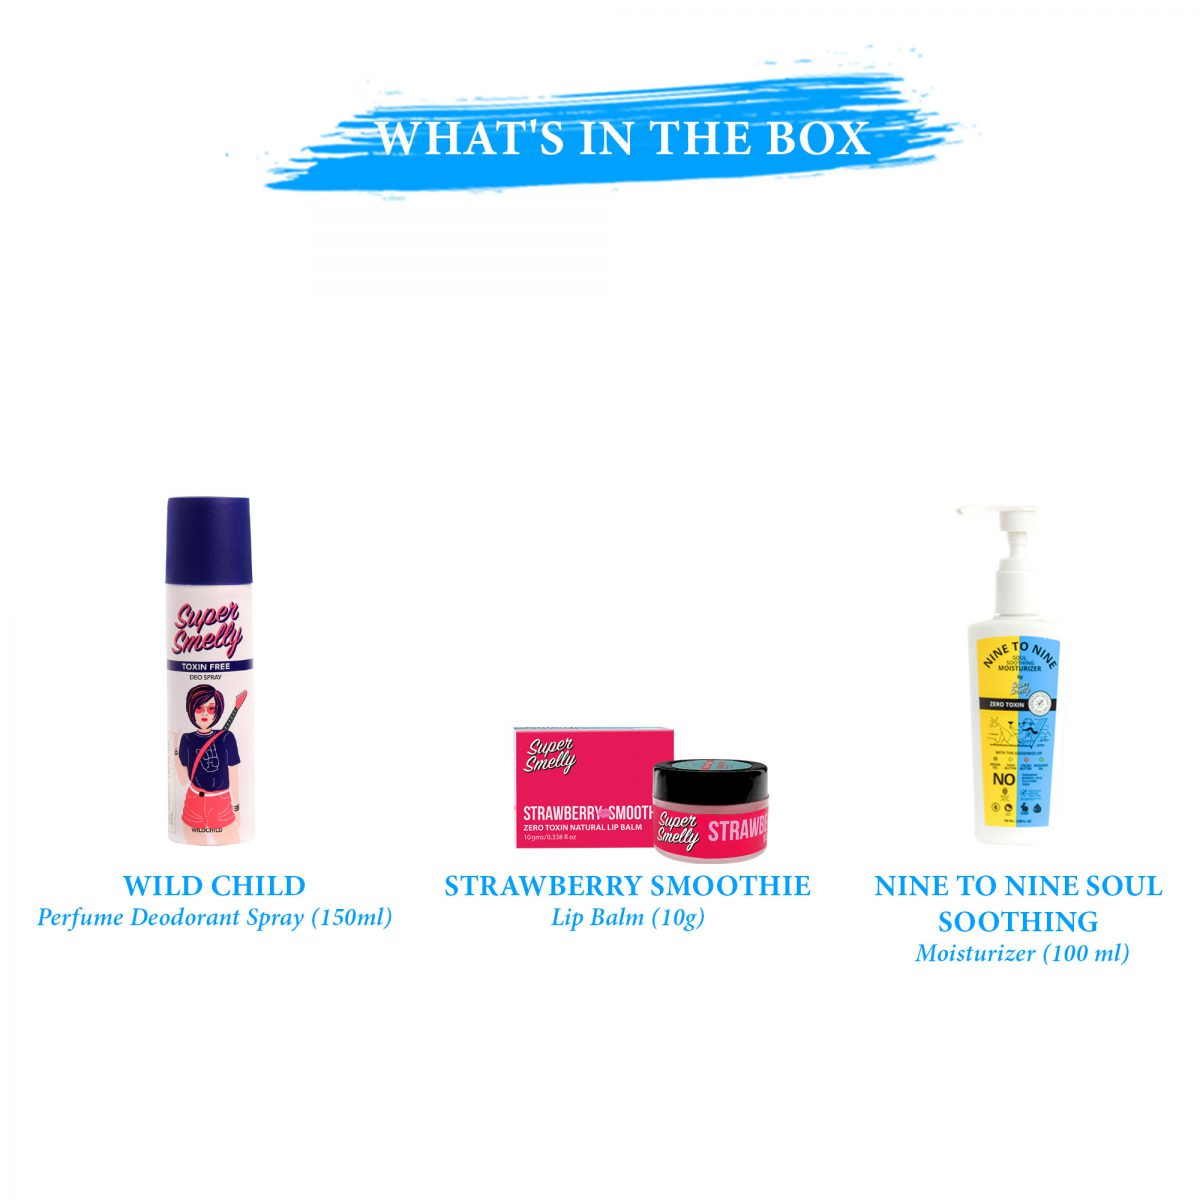 Buy supersmelly beauty gift hampers for her india | Buy online supersmelly gift combos for her